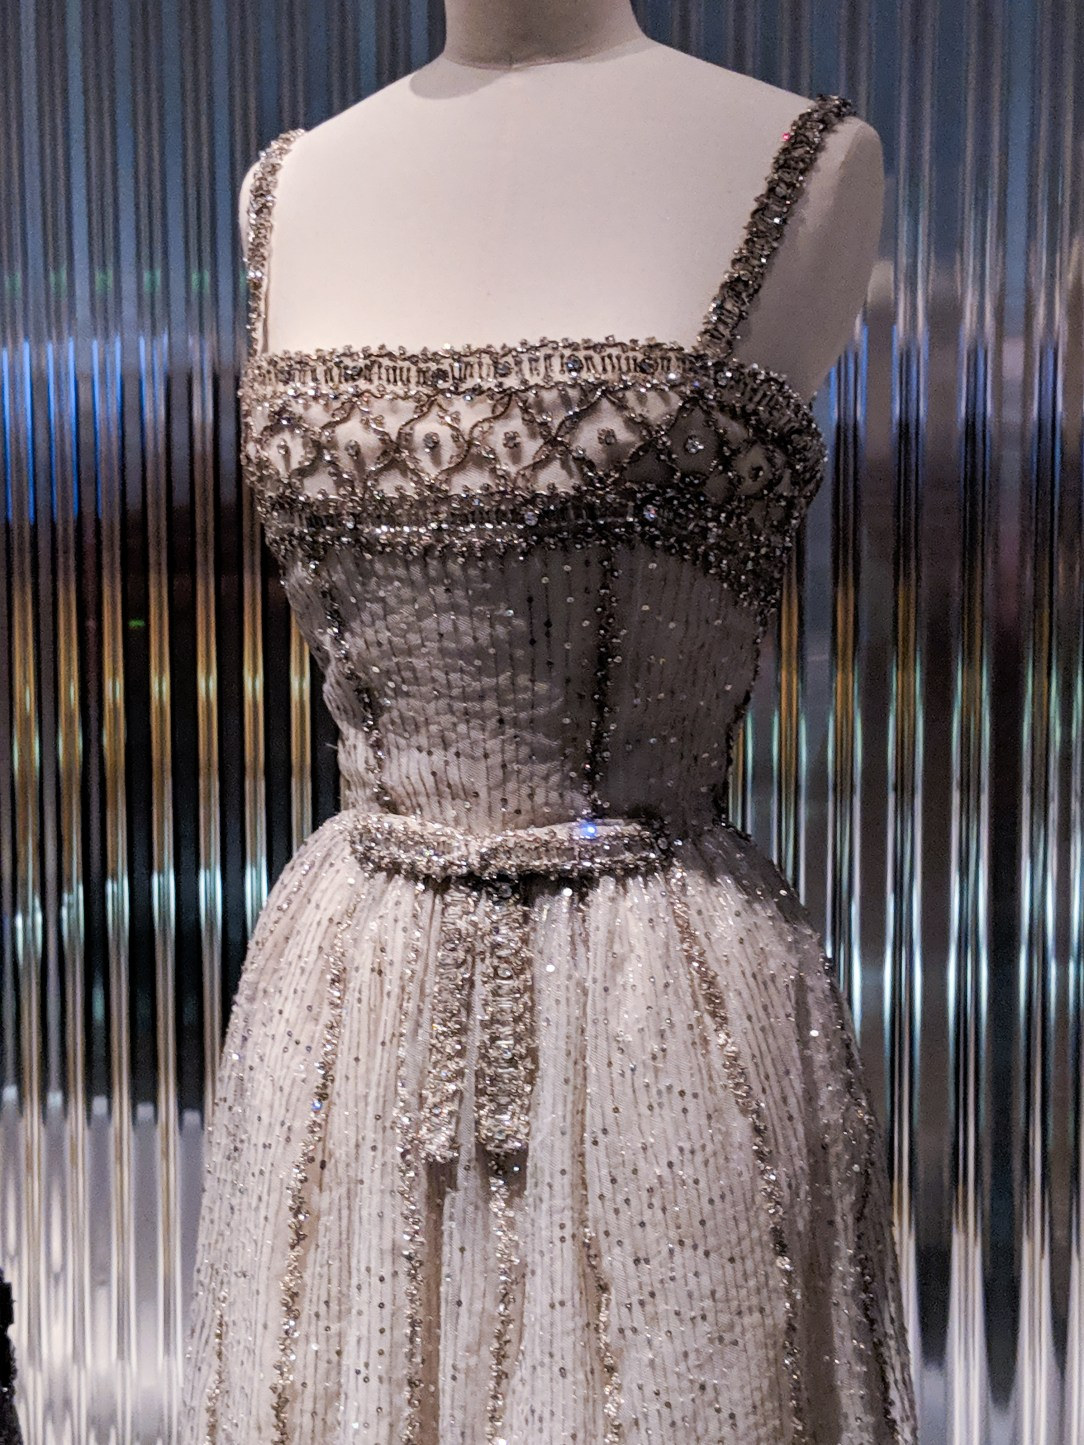 Dior: From Paris to the World Exhibit